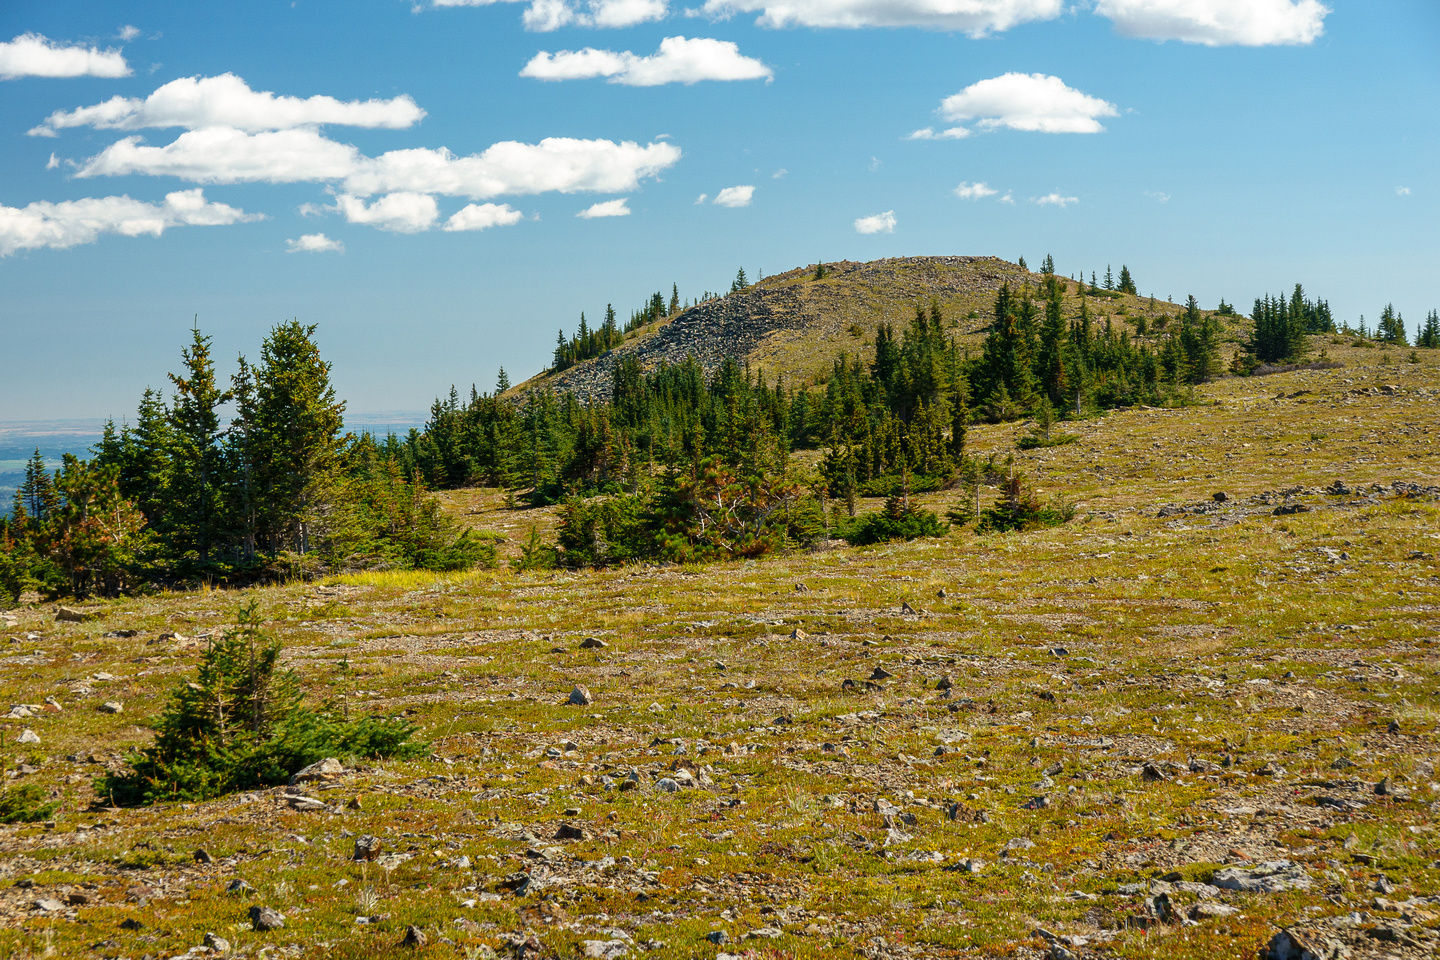 Hiking up the broad west ridge of Forgetmenot Mountain.